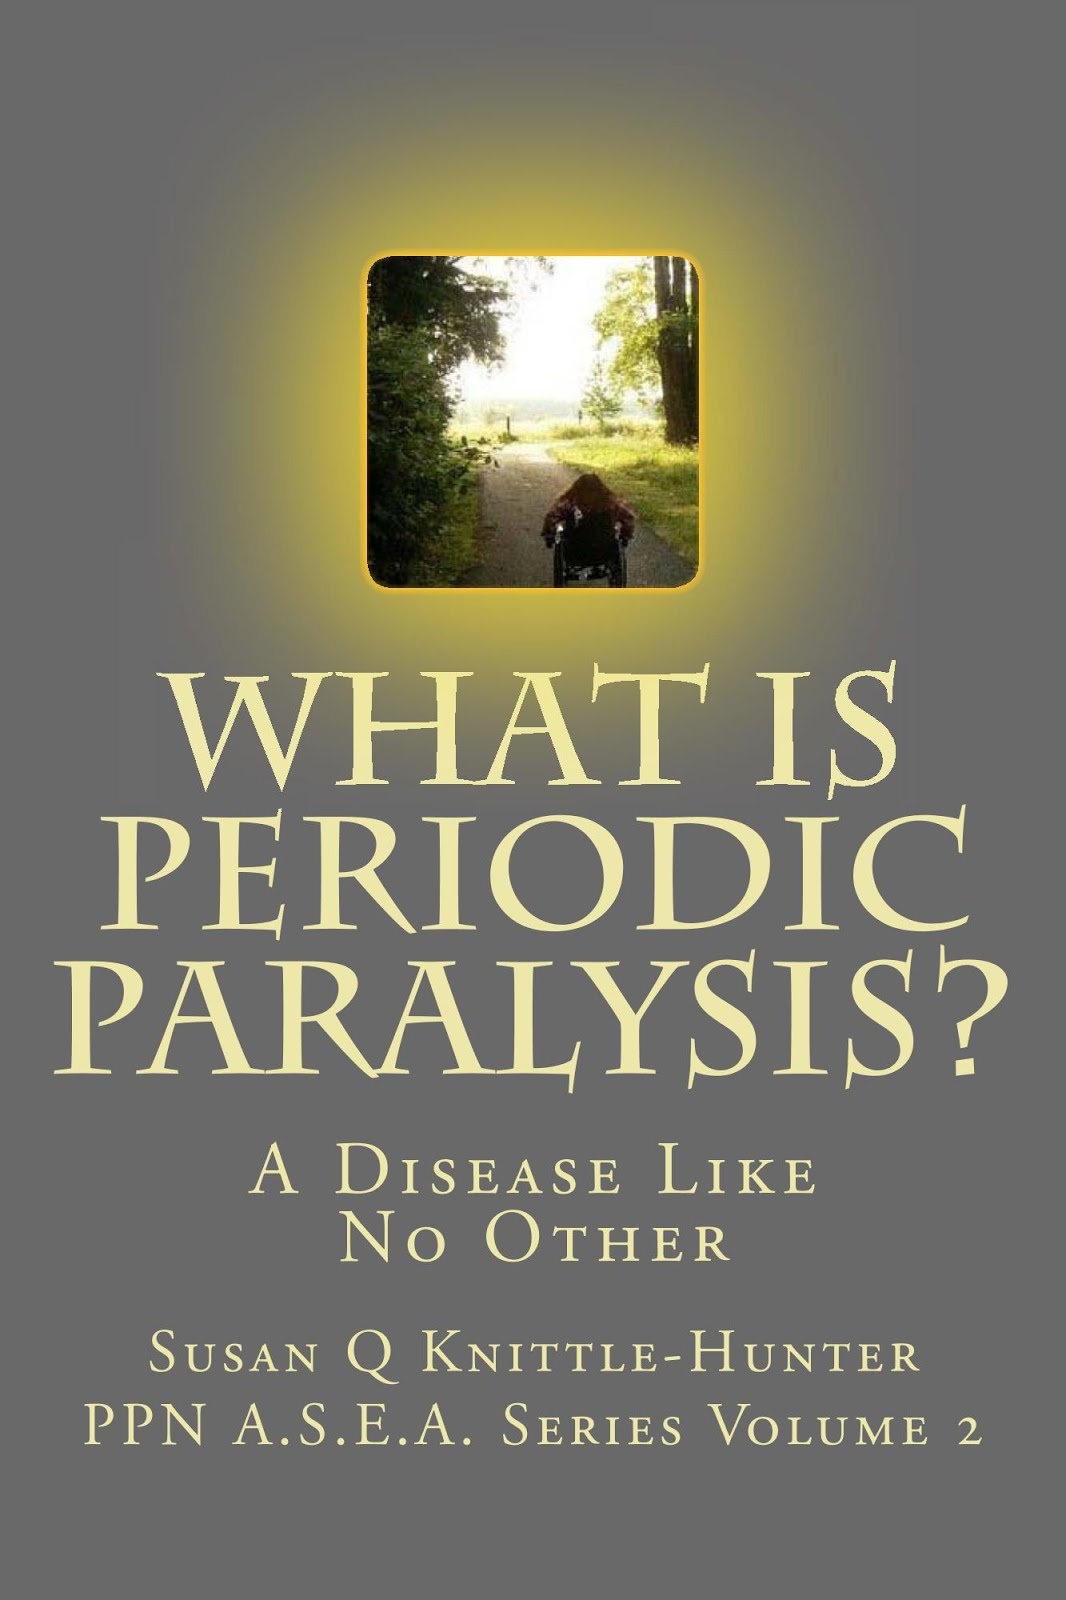 Our Fourth Book: What Is Periodic Paralysis?: A Disease Like No Other